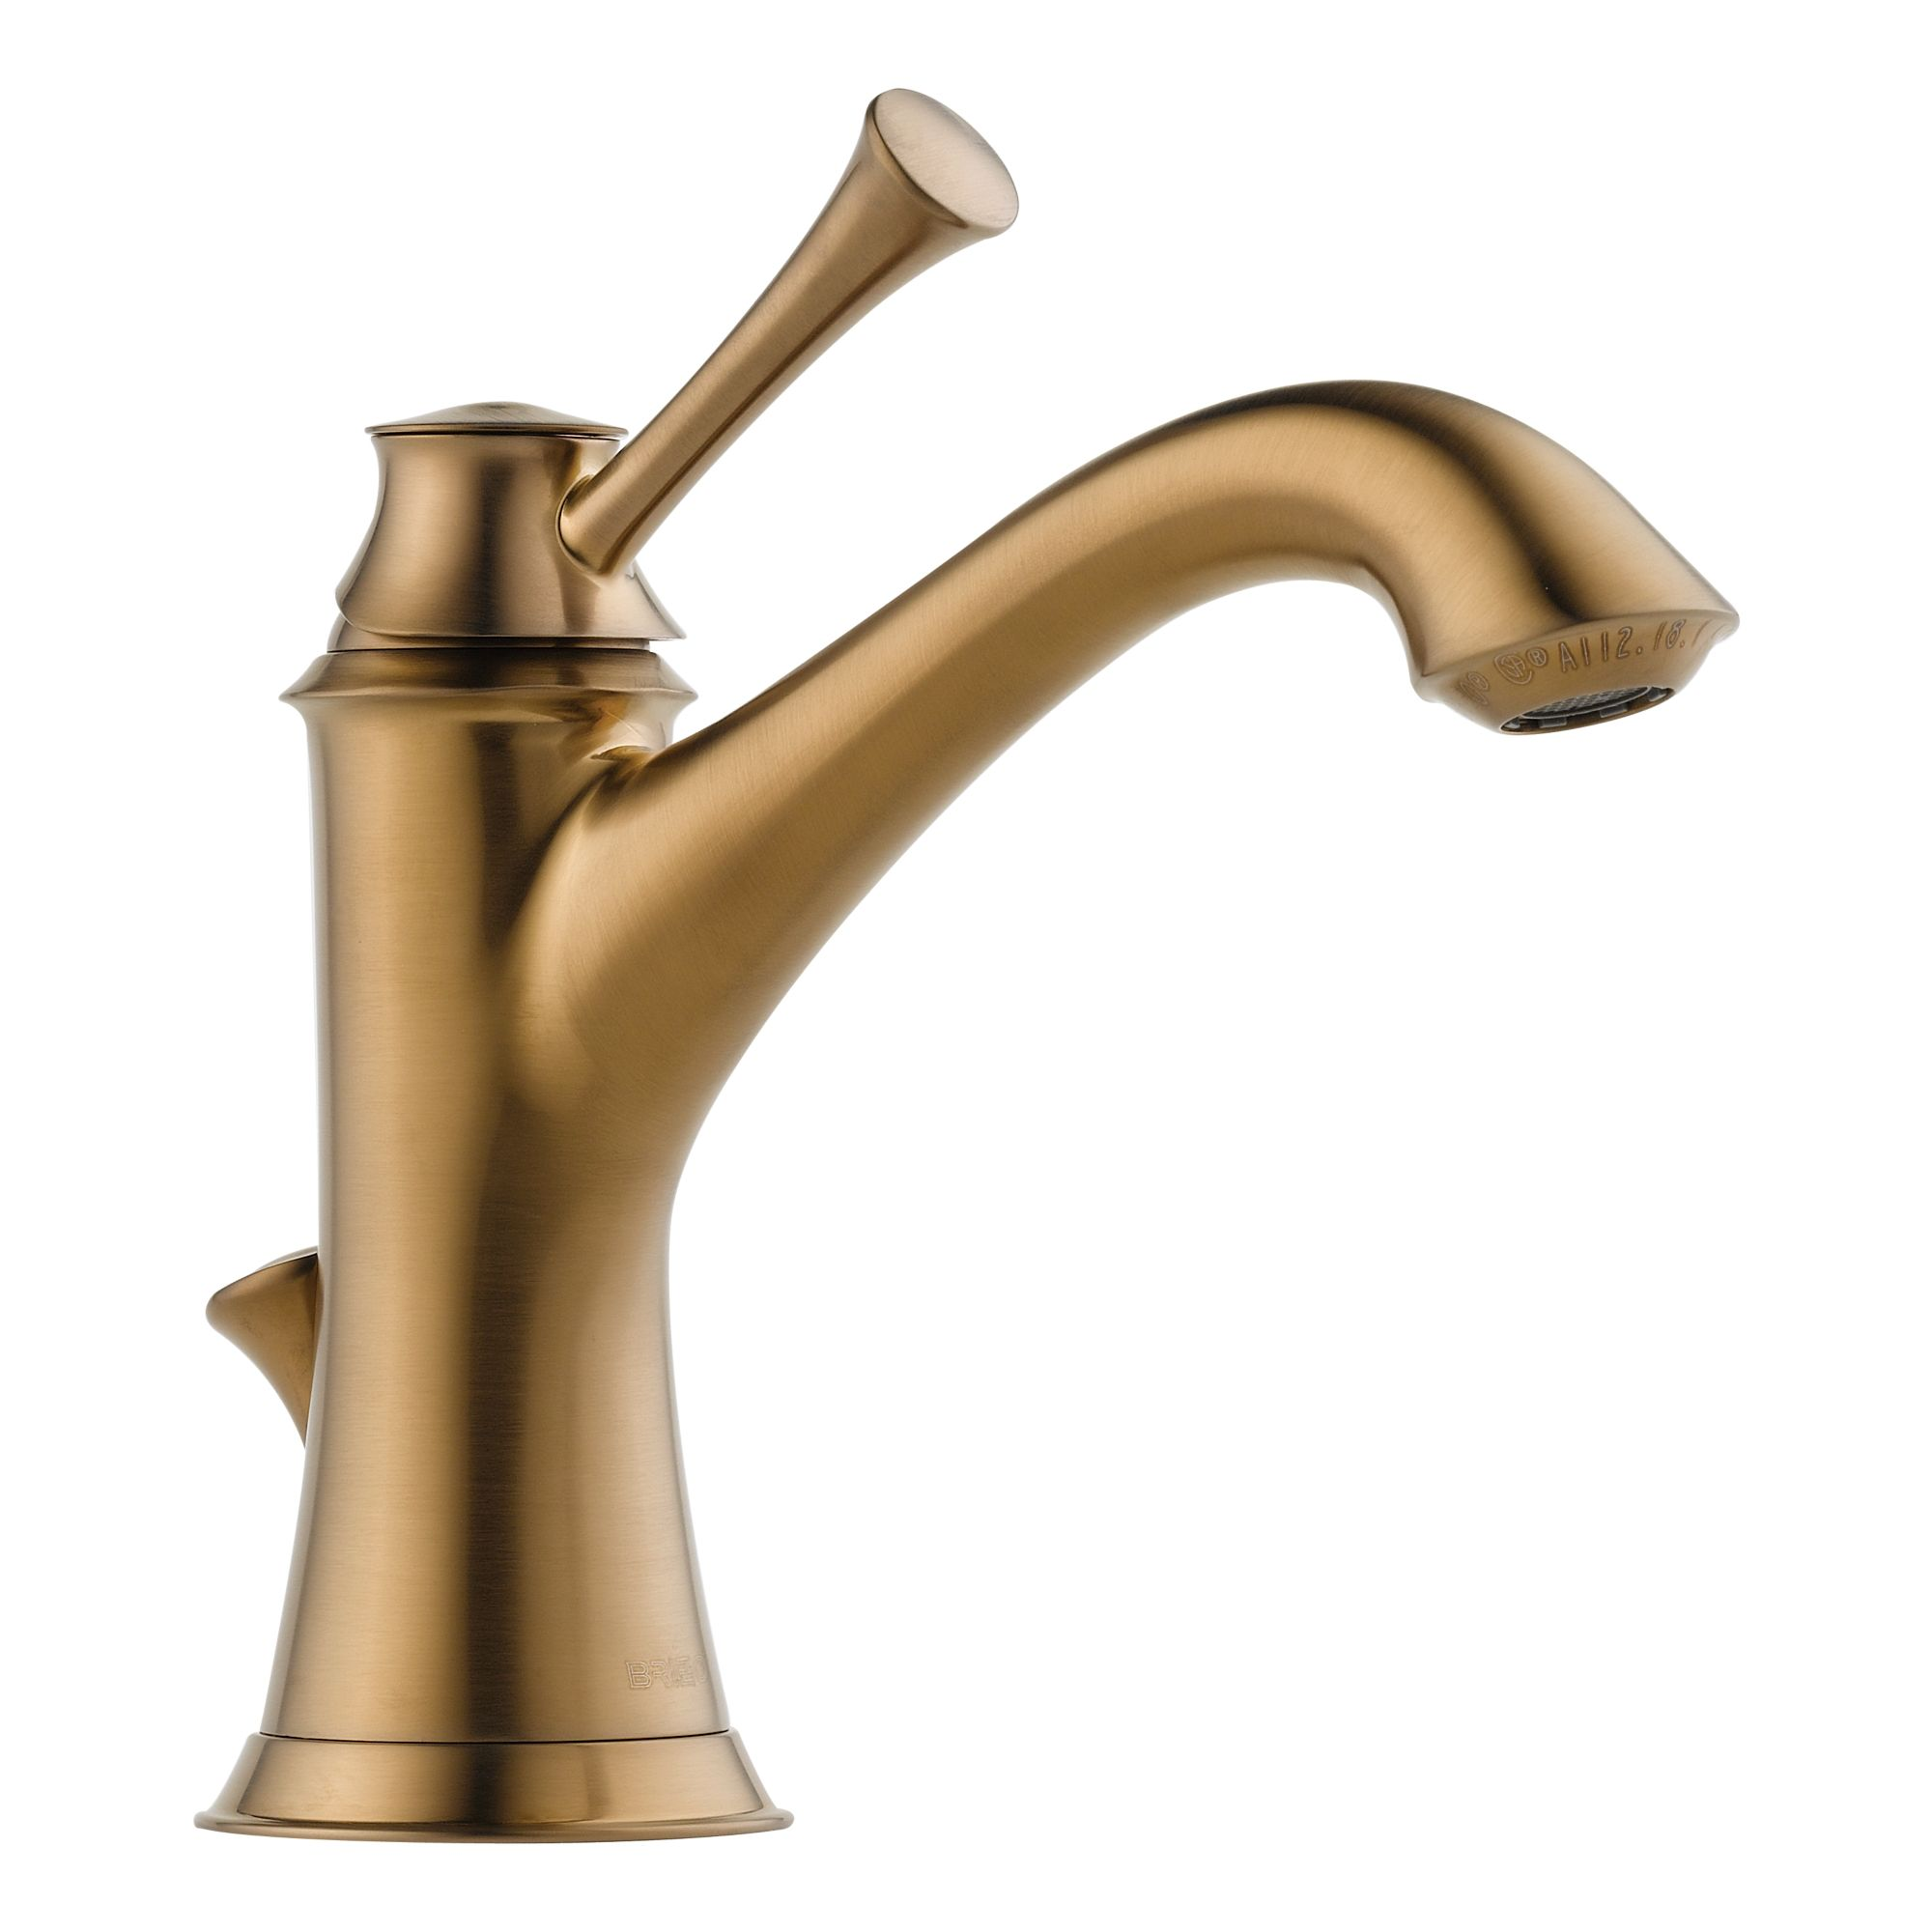 matching oil bronze kraus hole with rubbed pop bathroom lever brushed ventus set up drain single faucets faucet vessel com kraususa kef handle